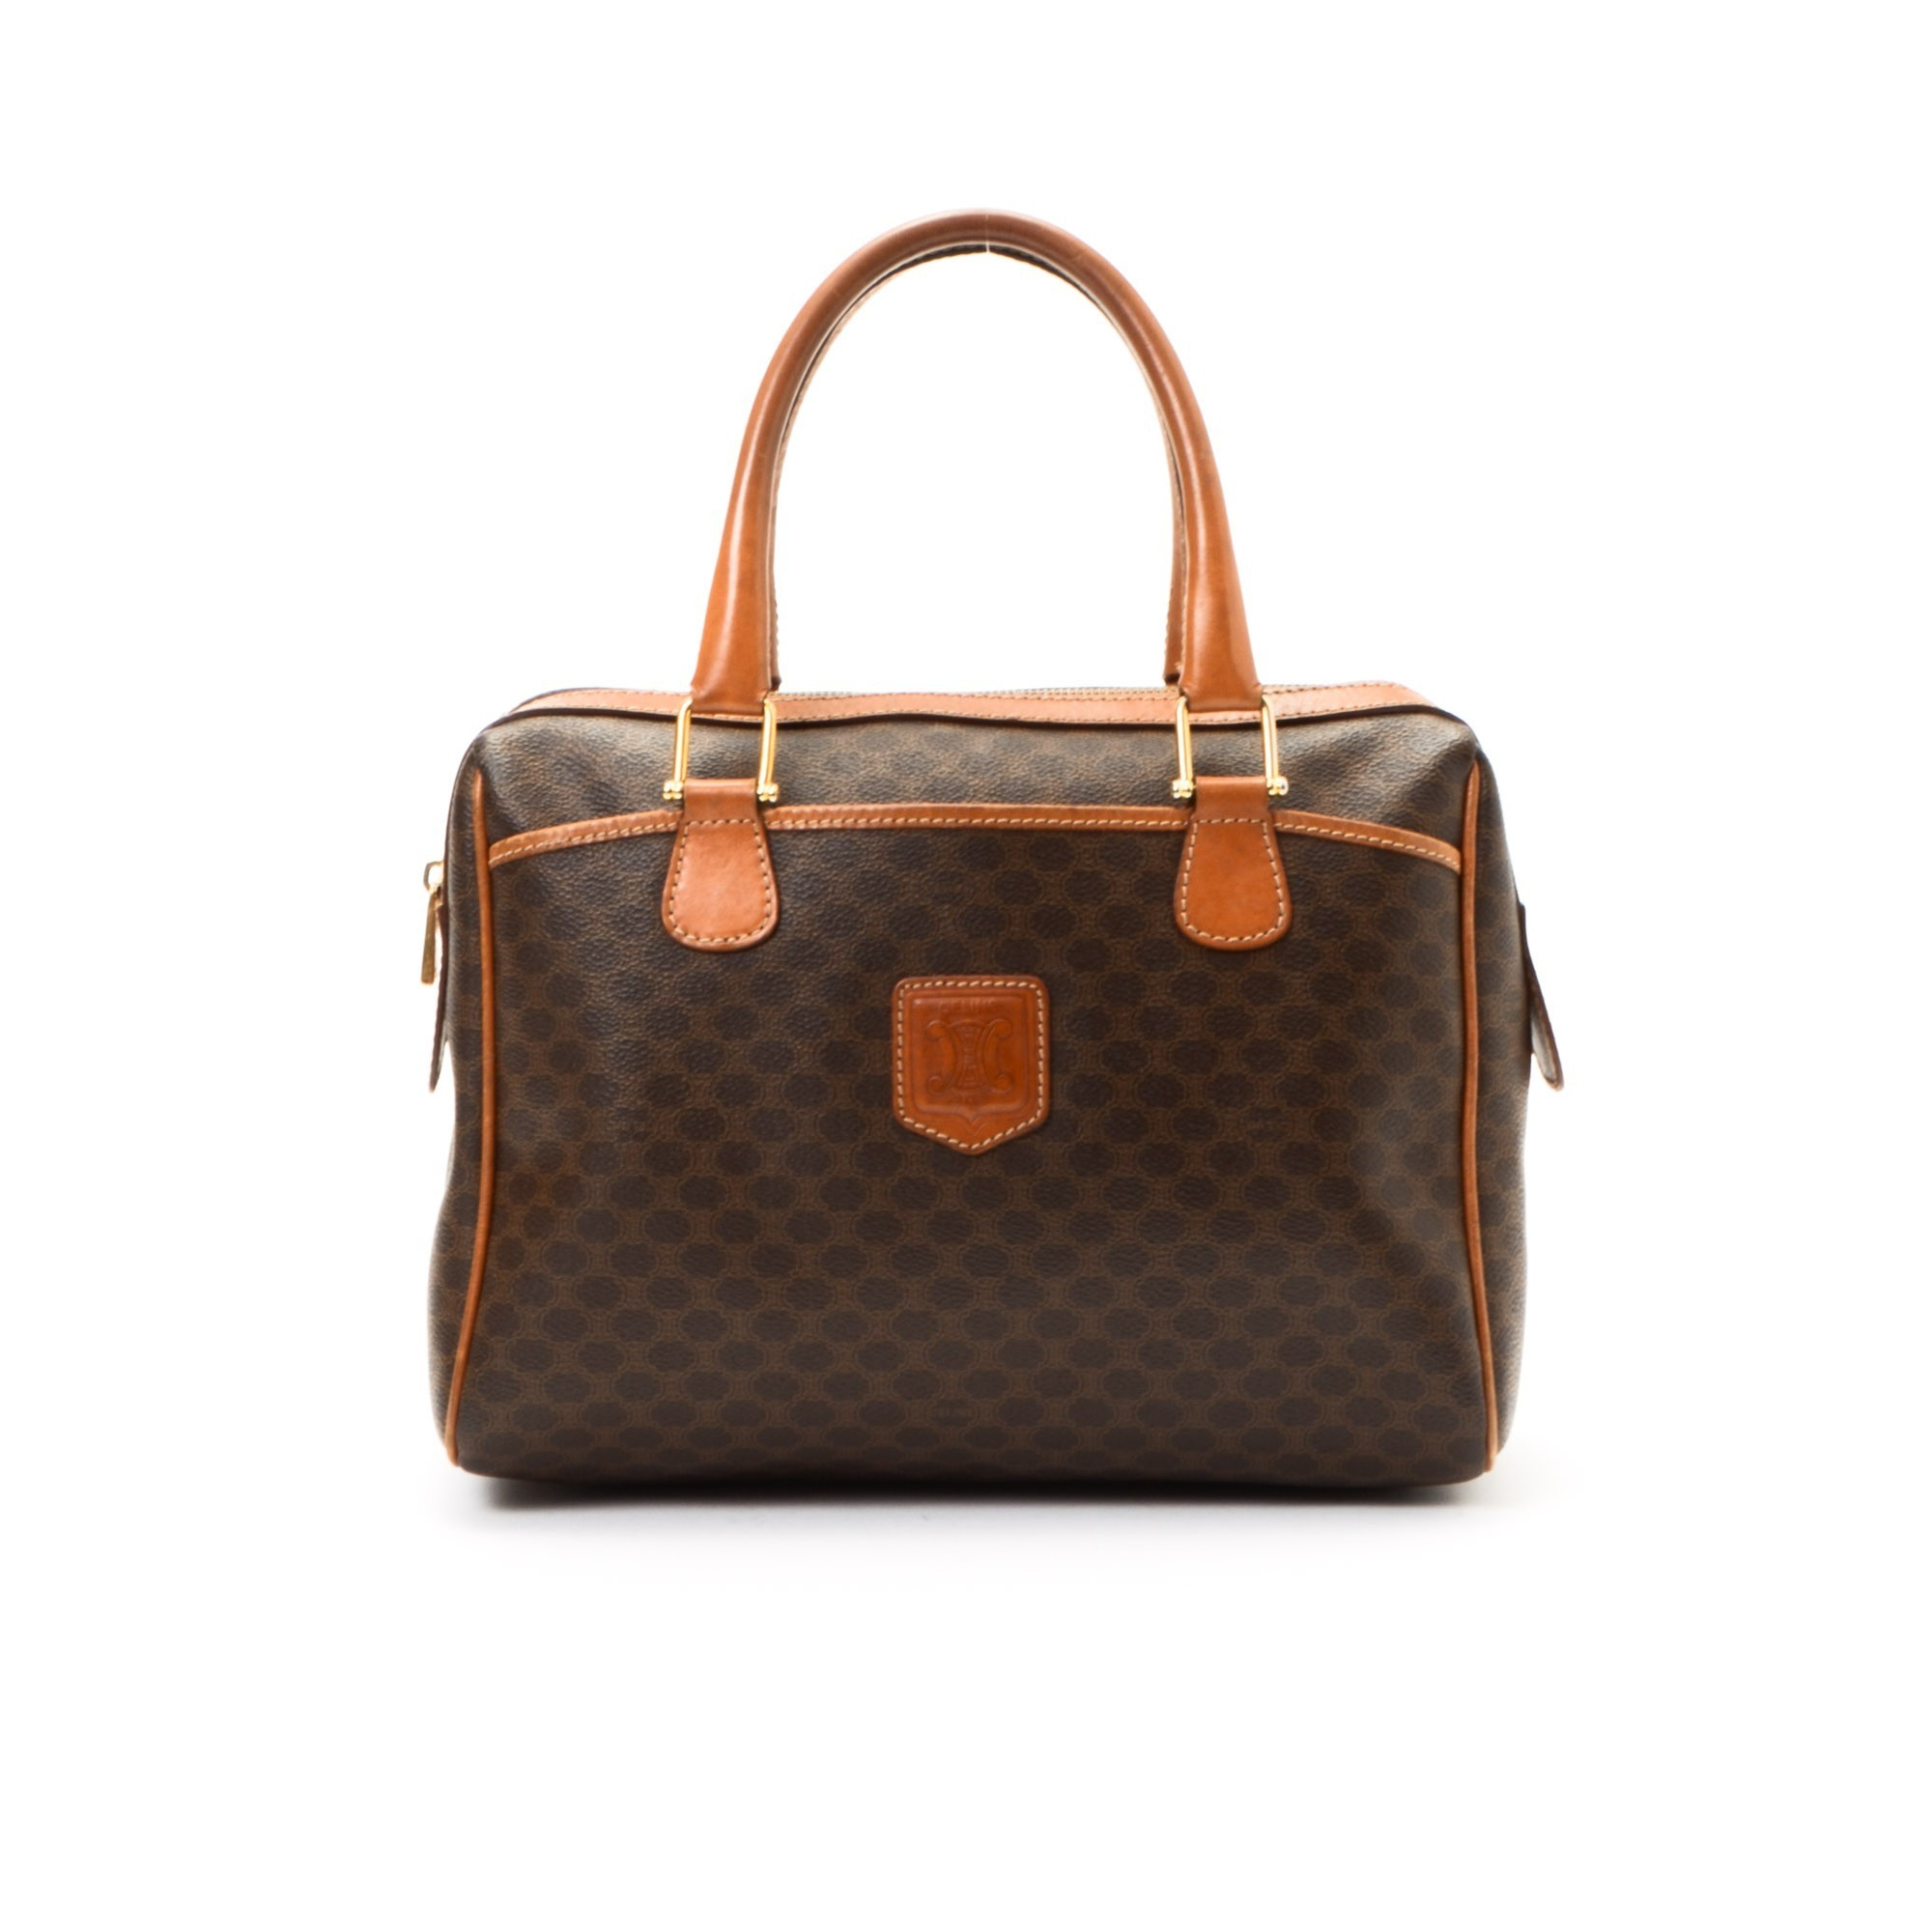 celine trapeze bag black - C��LINE Boston Bag Macadam Brown Coated Canvas Travel Bag - LXR&CO ...